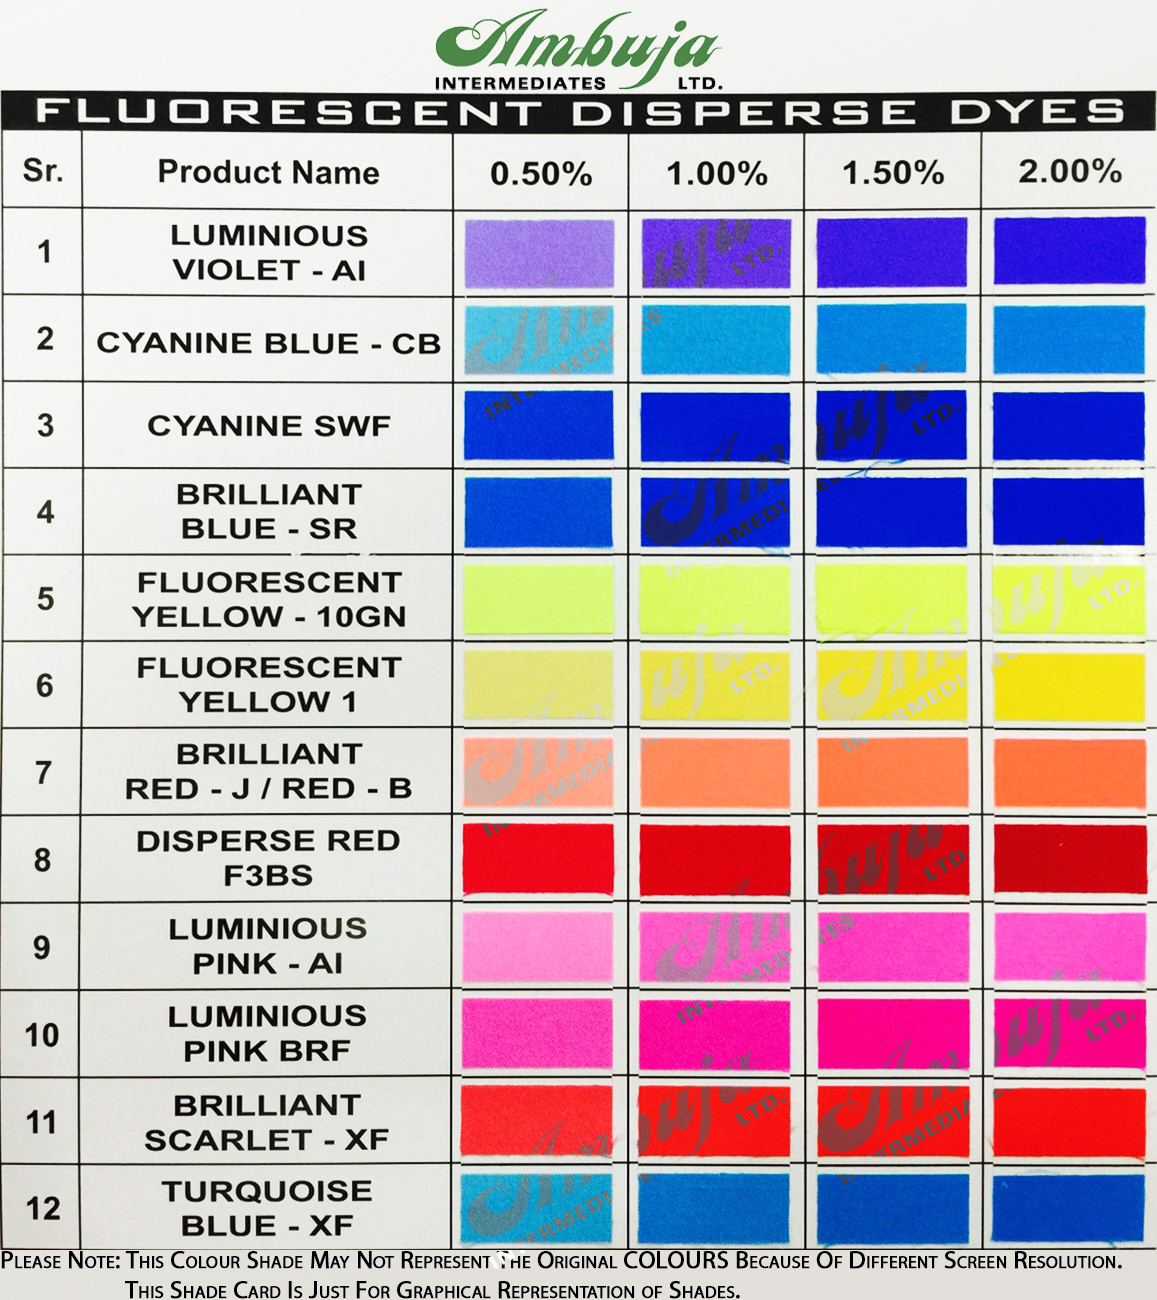 Shade Card for Fluorescent Disperse Dyes